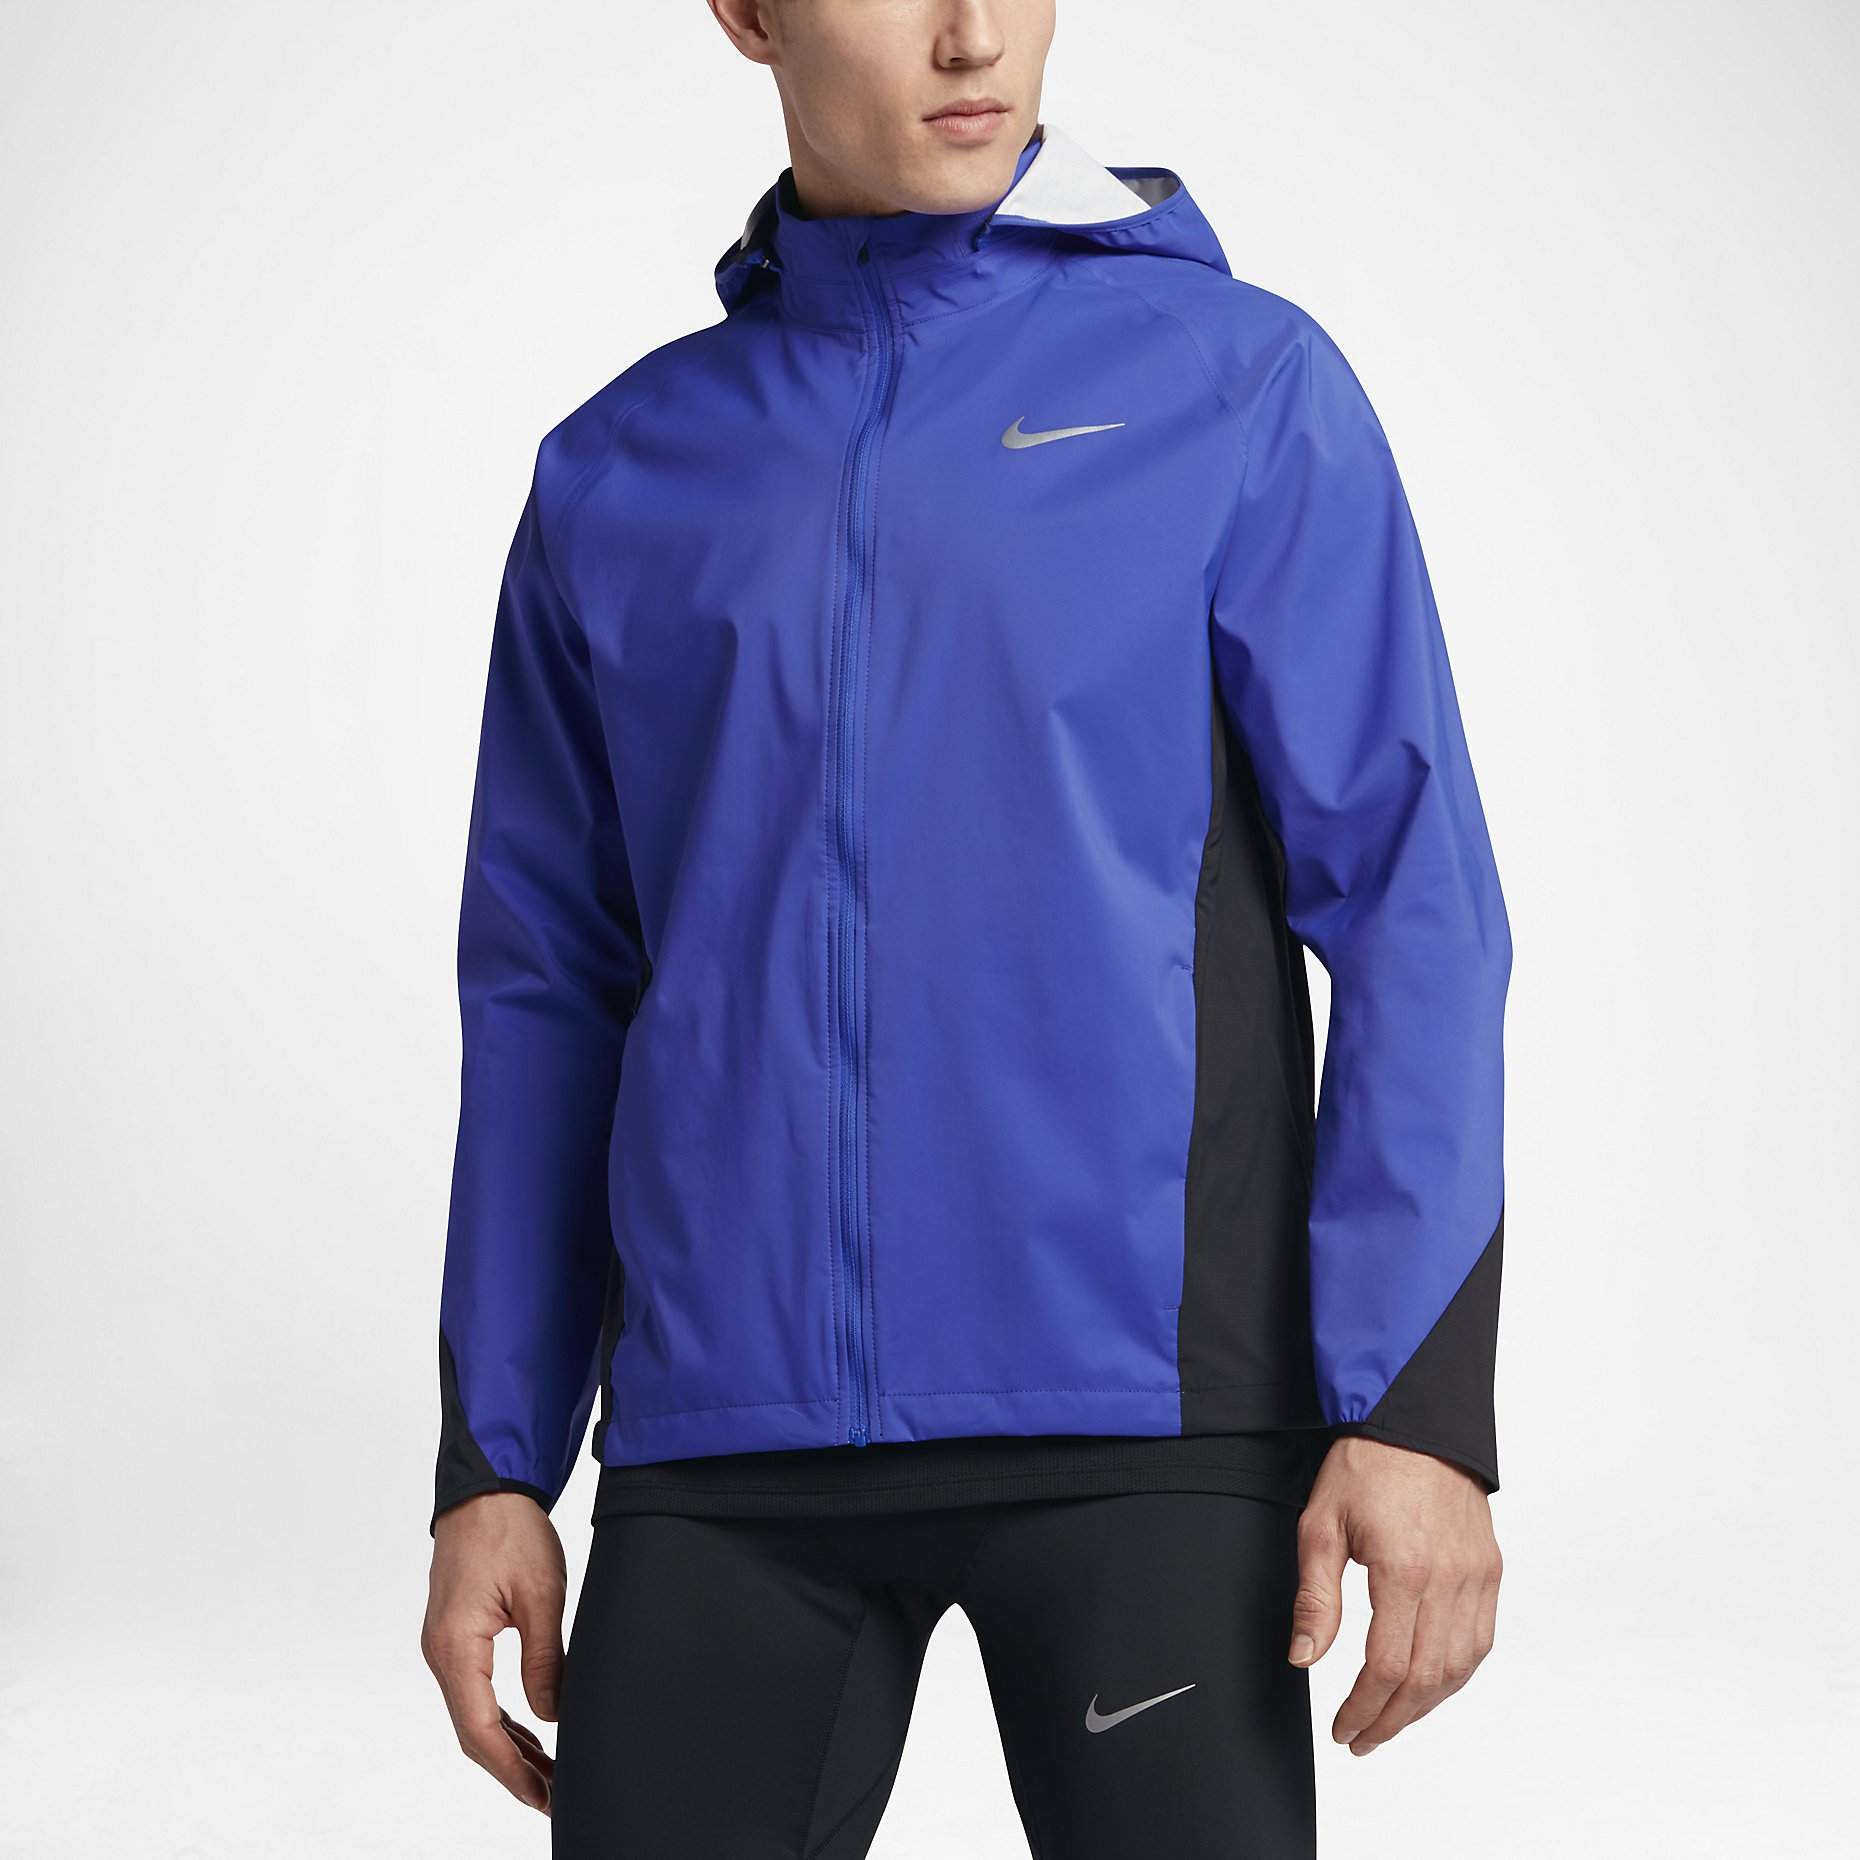 1089770f941e Nike Shield Men s Running Jacket - Alton Sports